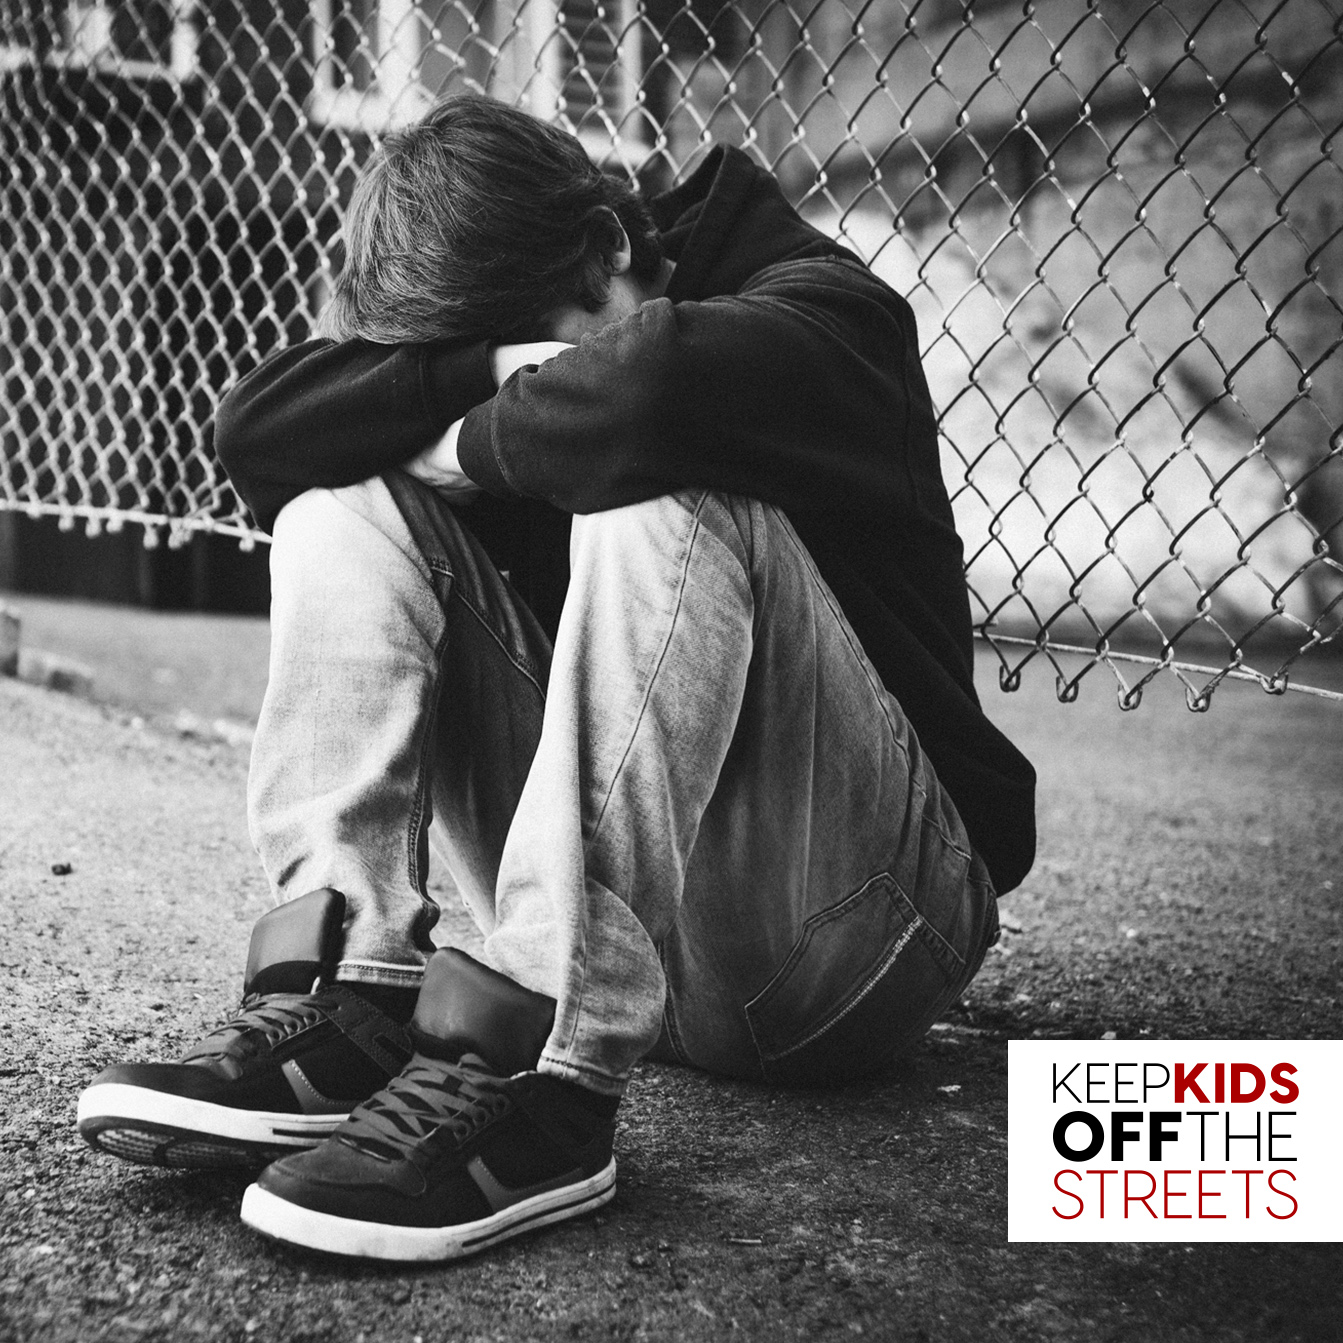 Keep Kids off the Streets